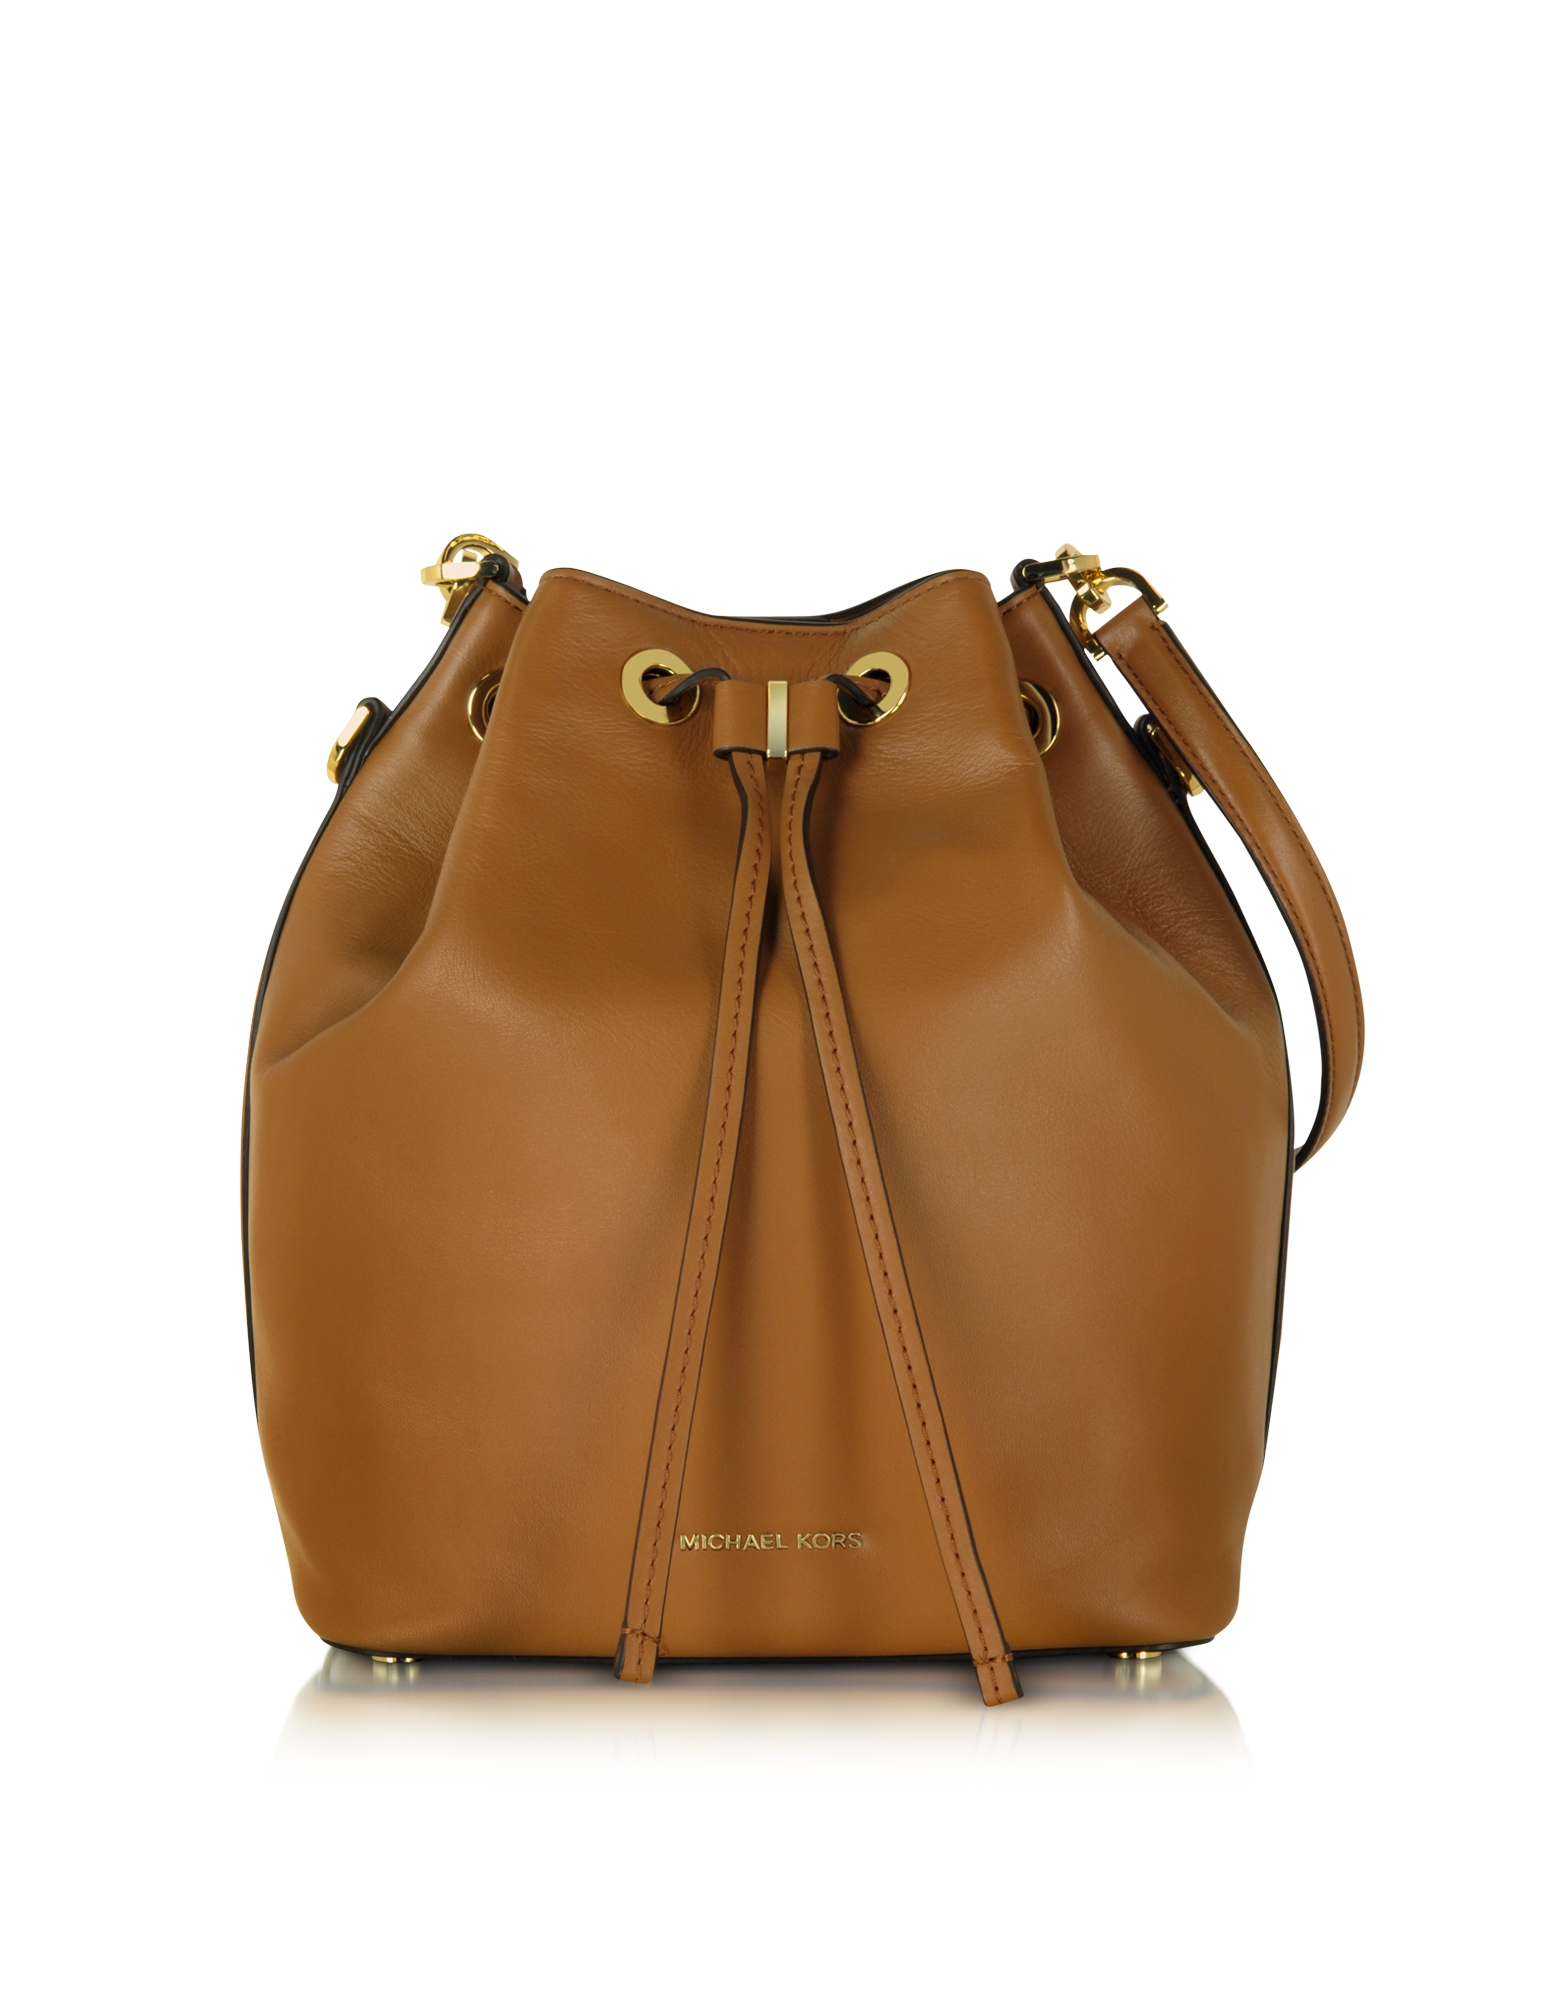 Lyst - Michael Kors Dottie Acorn Large Bucket Bag in Brown 8b625315fe571